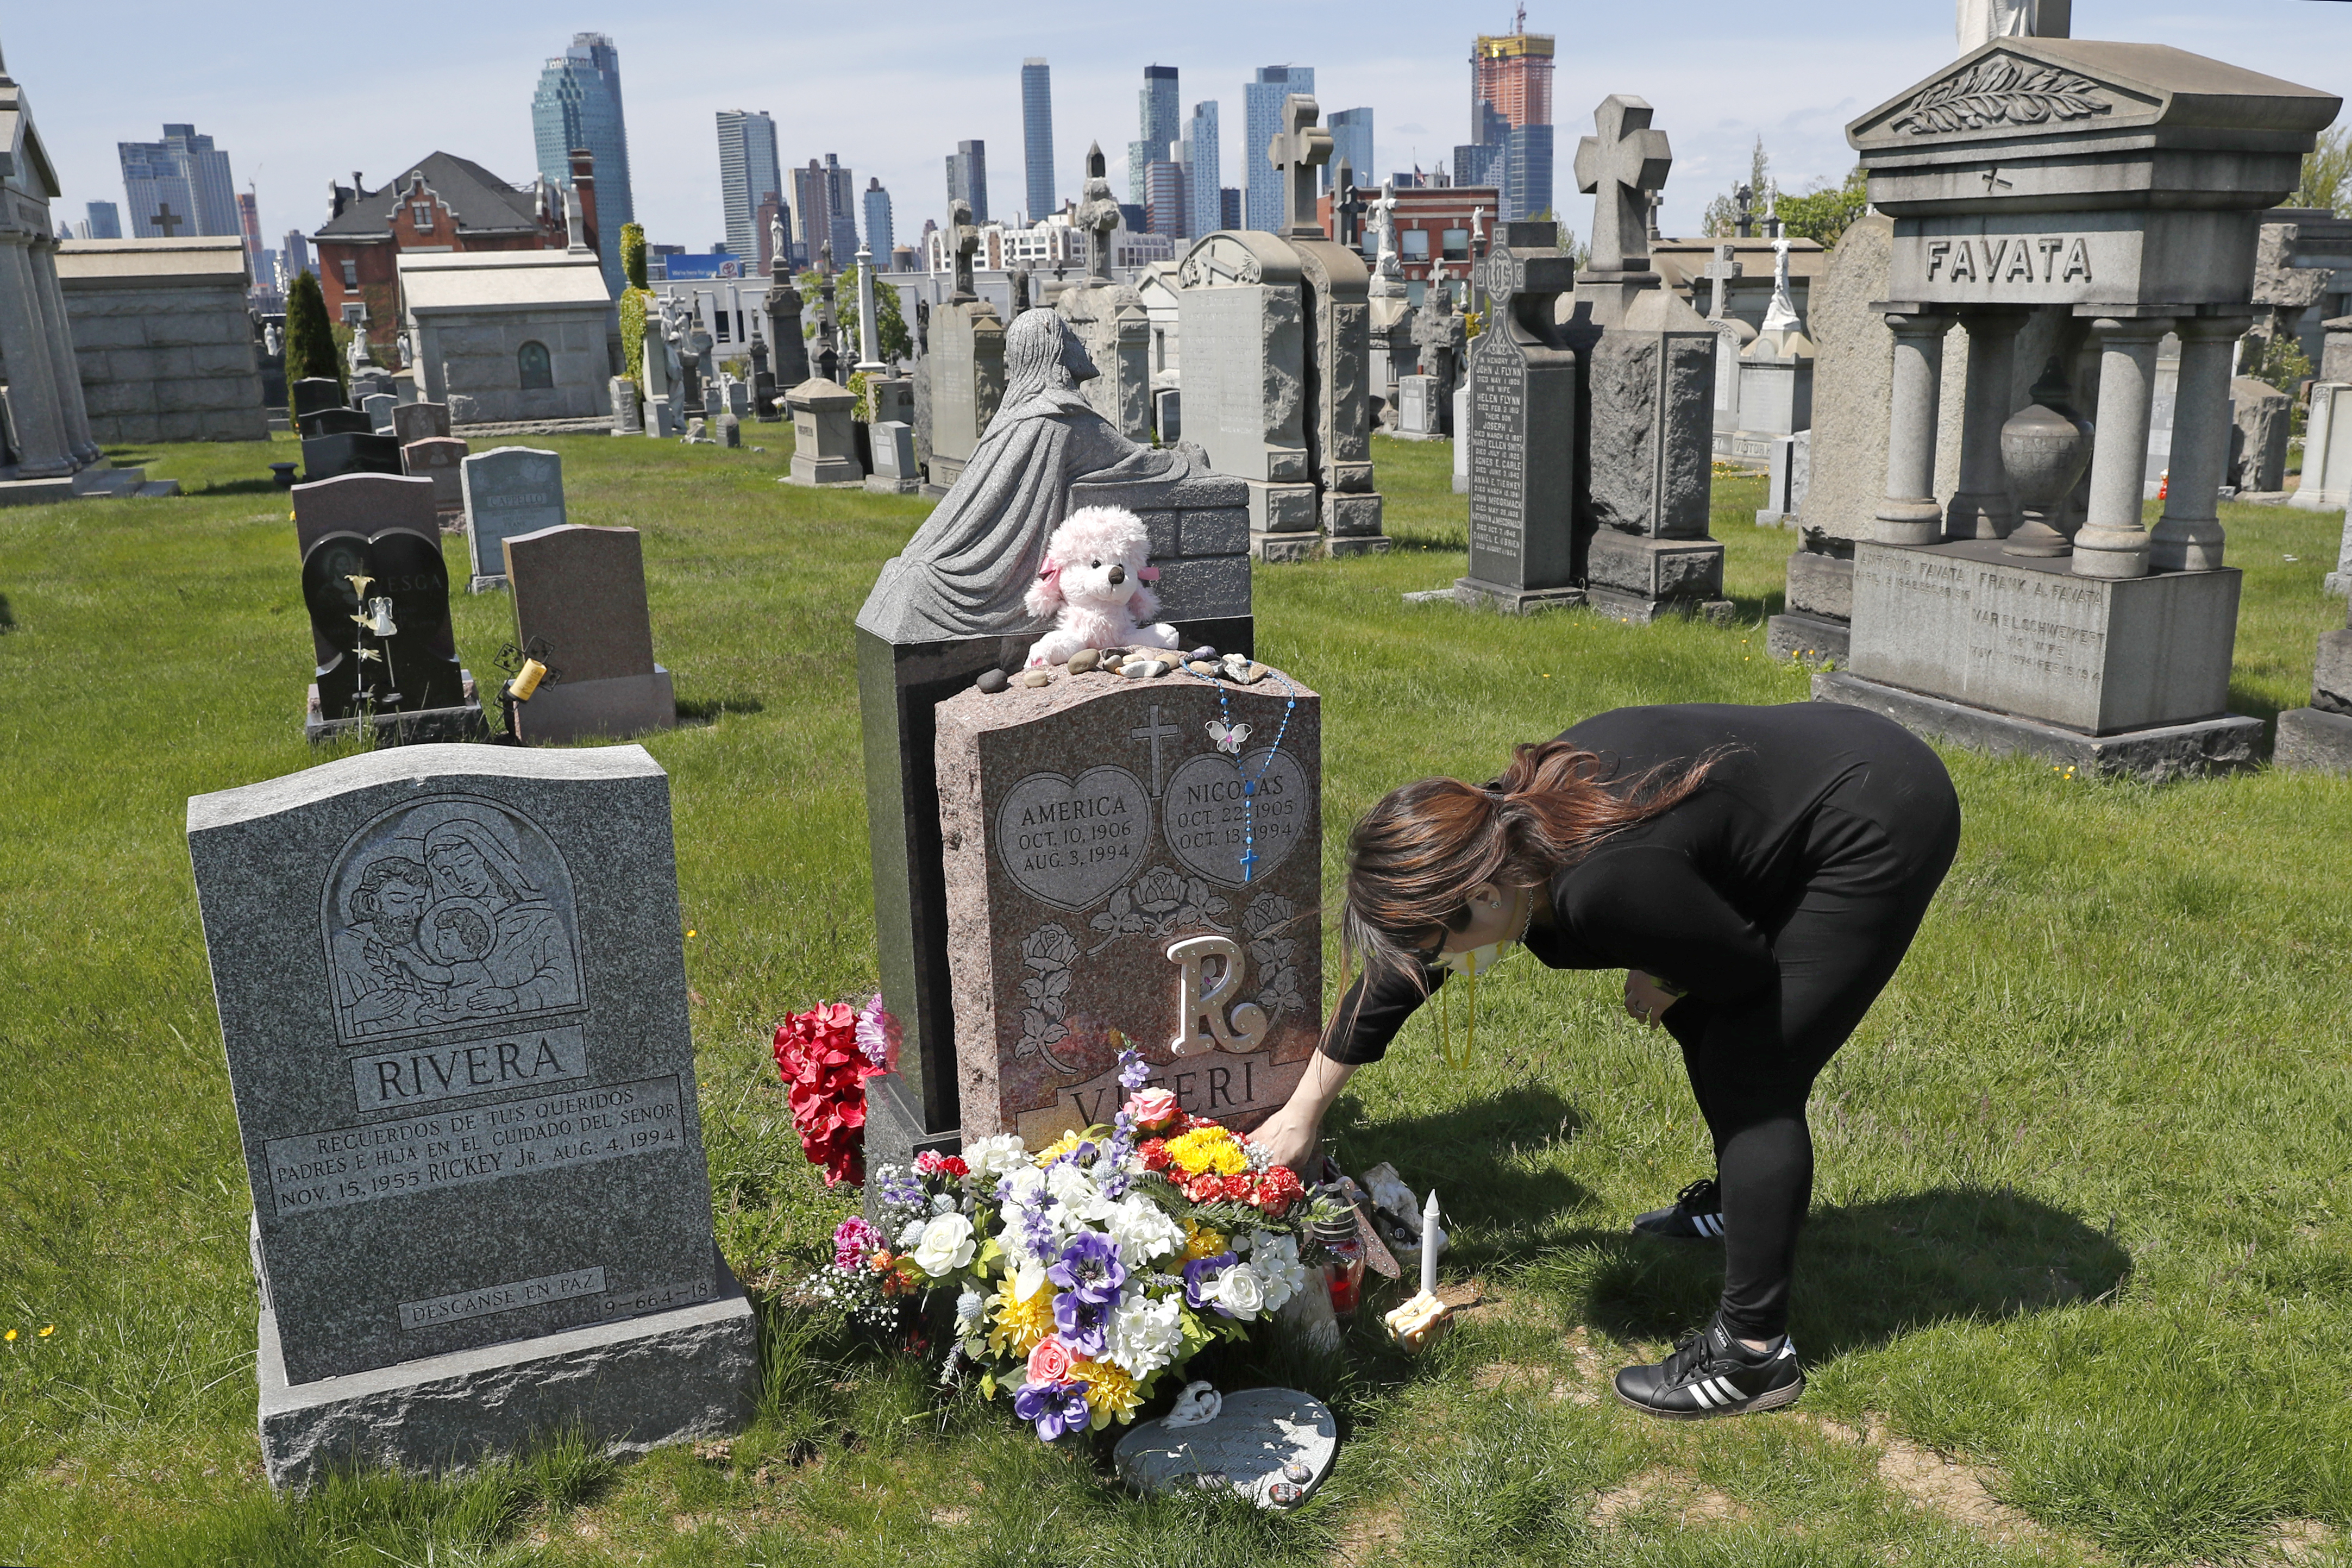 In this Sunday, May 10, 2020 file photo, Sharon Rivera adjusts flowers and other items left at the grave of her daughter, Victoria, at Calvary Cemetery in New York, on Mother's Day.